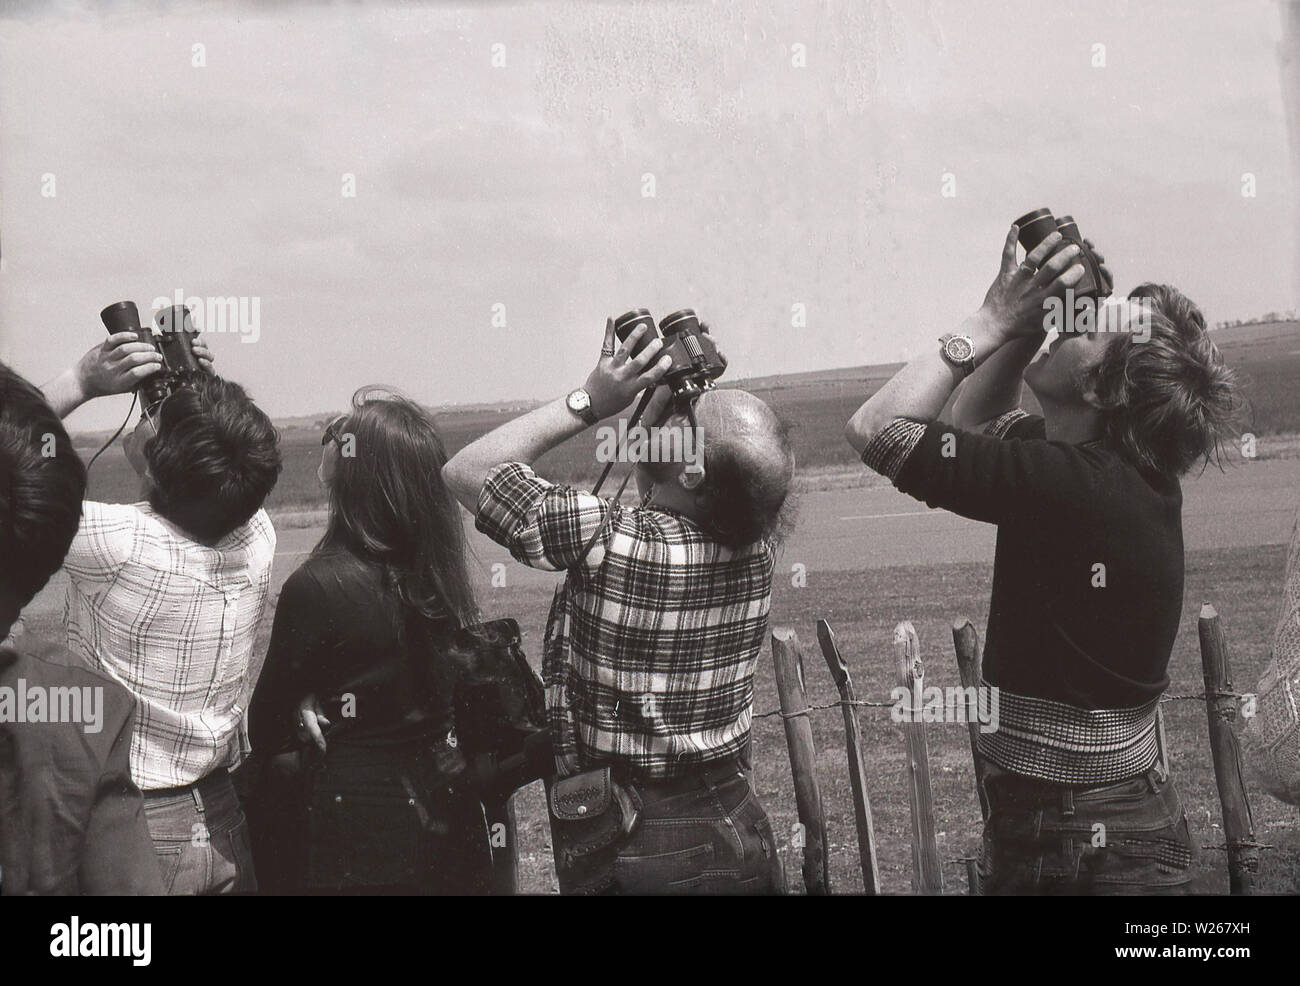 1970s, historical, spectators at an airshow standing behind a fence and using binoculars to look up in the distance, Old Warden Aerodrome, Biggleswade, England, UK. - Stock Image